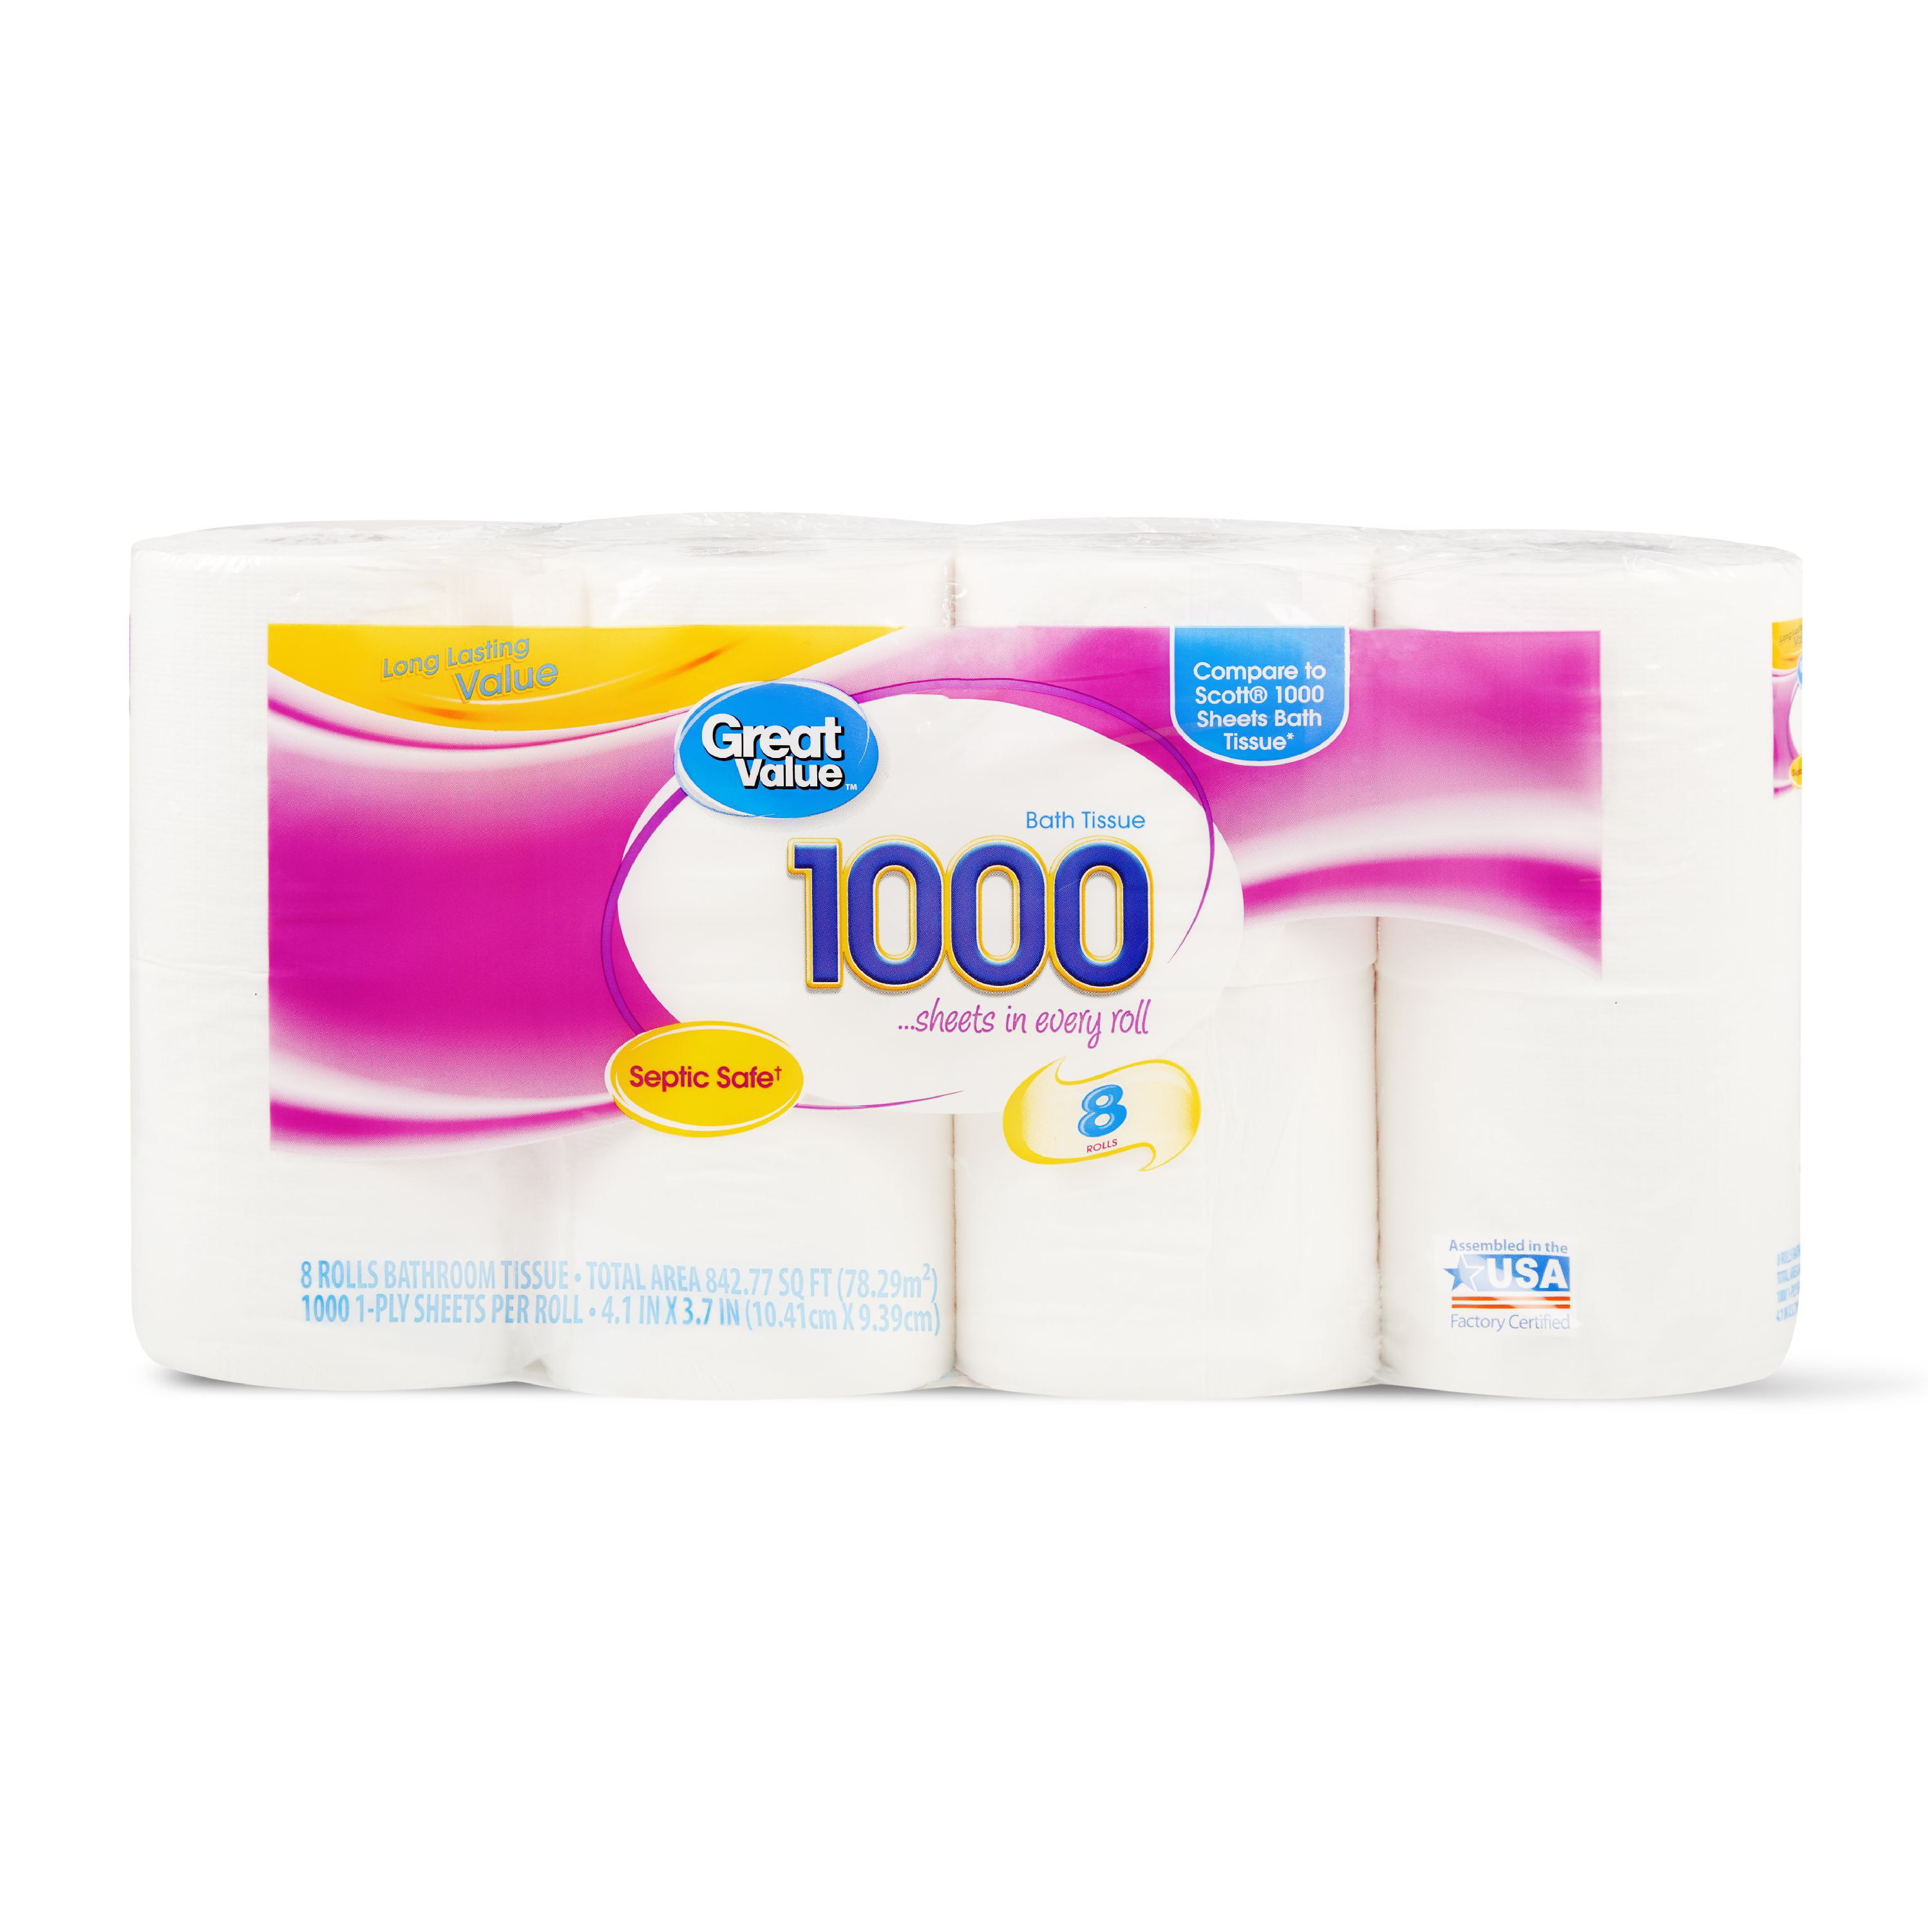 Great Value 1000 SHeet Toilet Paper, 8 Rolls by Wal-Mart Stores, Inc.